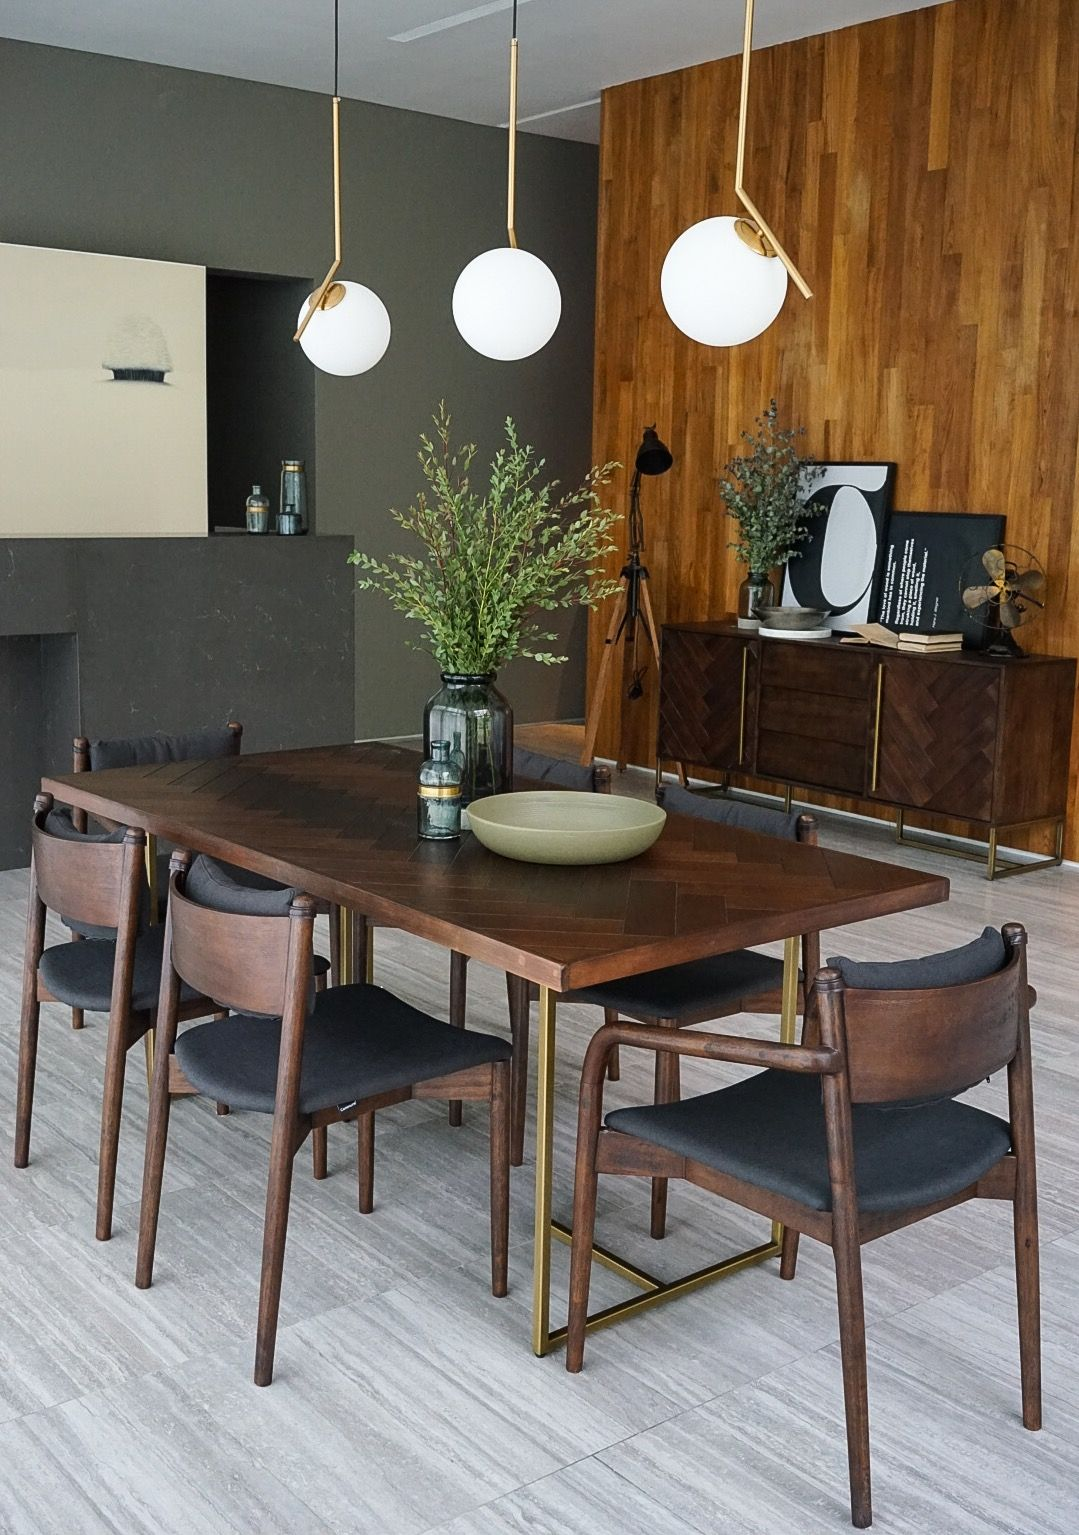 How a modern vintage home is designed featuring the brown bruno dining table with its distinctive herringbone pattern set in sturdy acacia wood